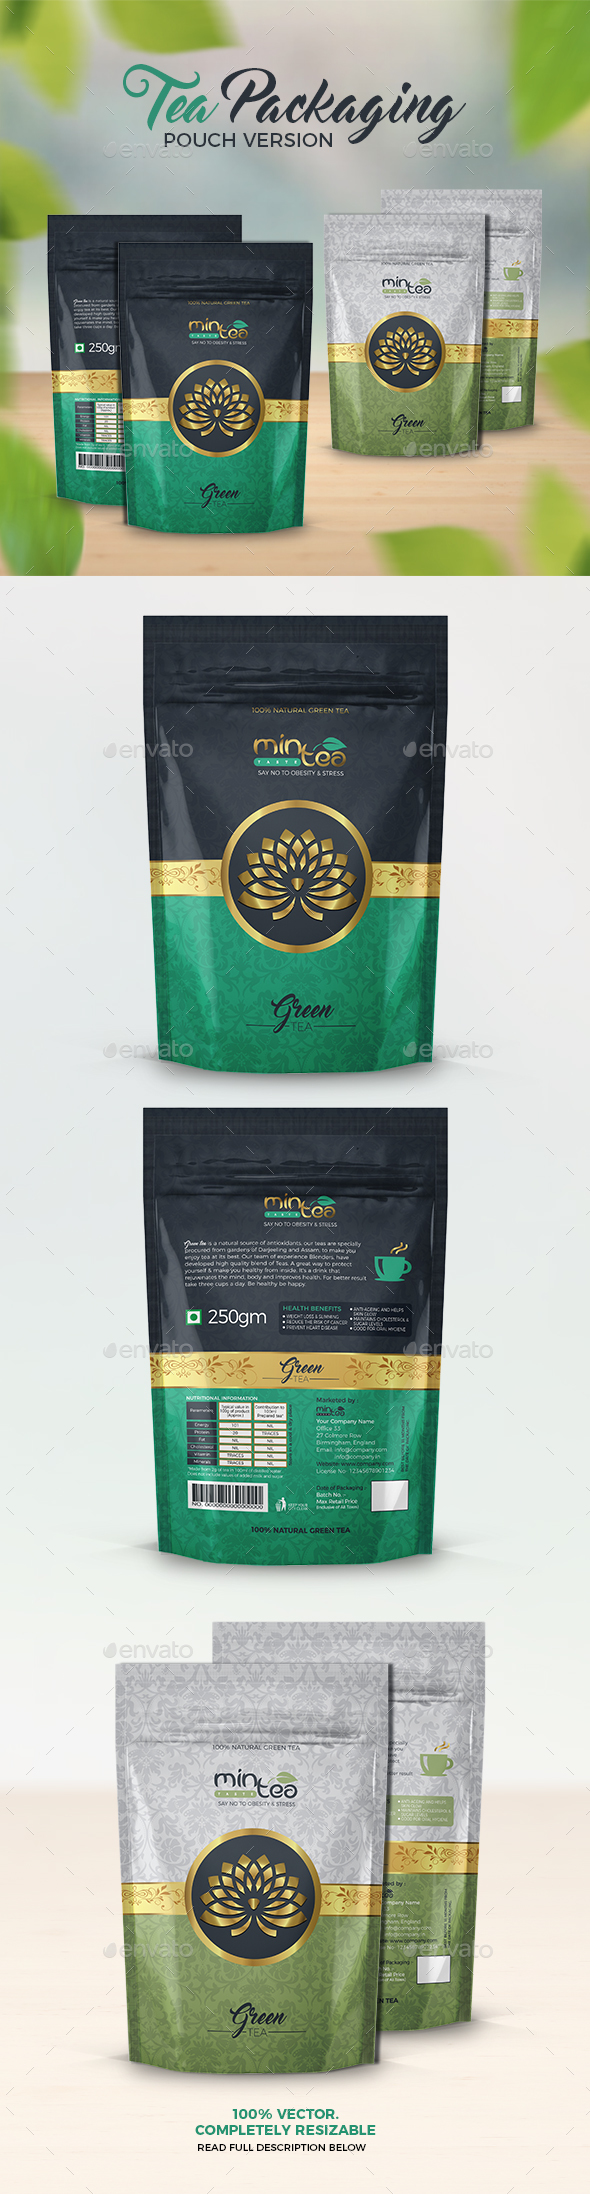 Tea Packaging (Pouch Version) - Packaging Print Templates